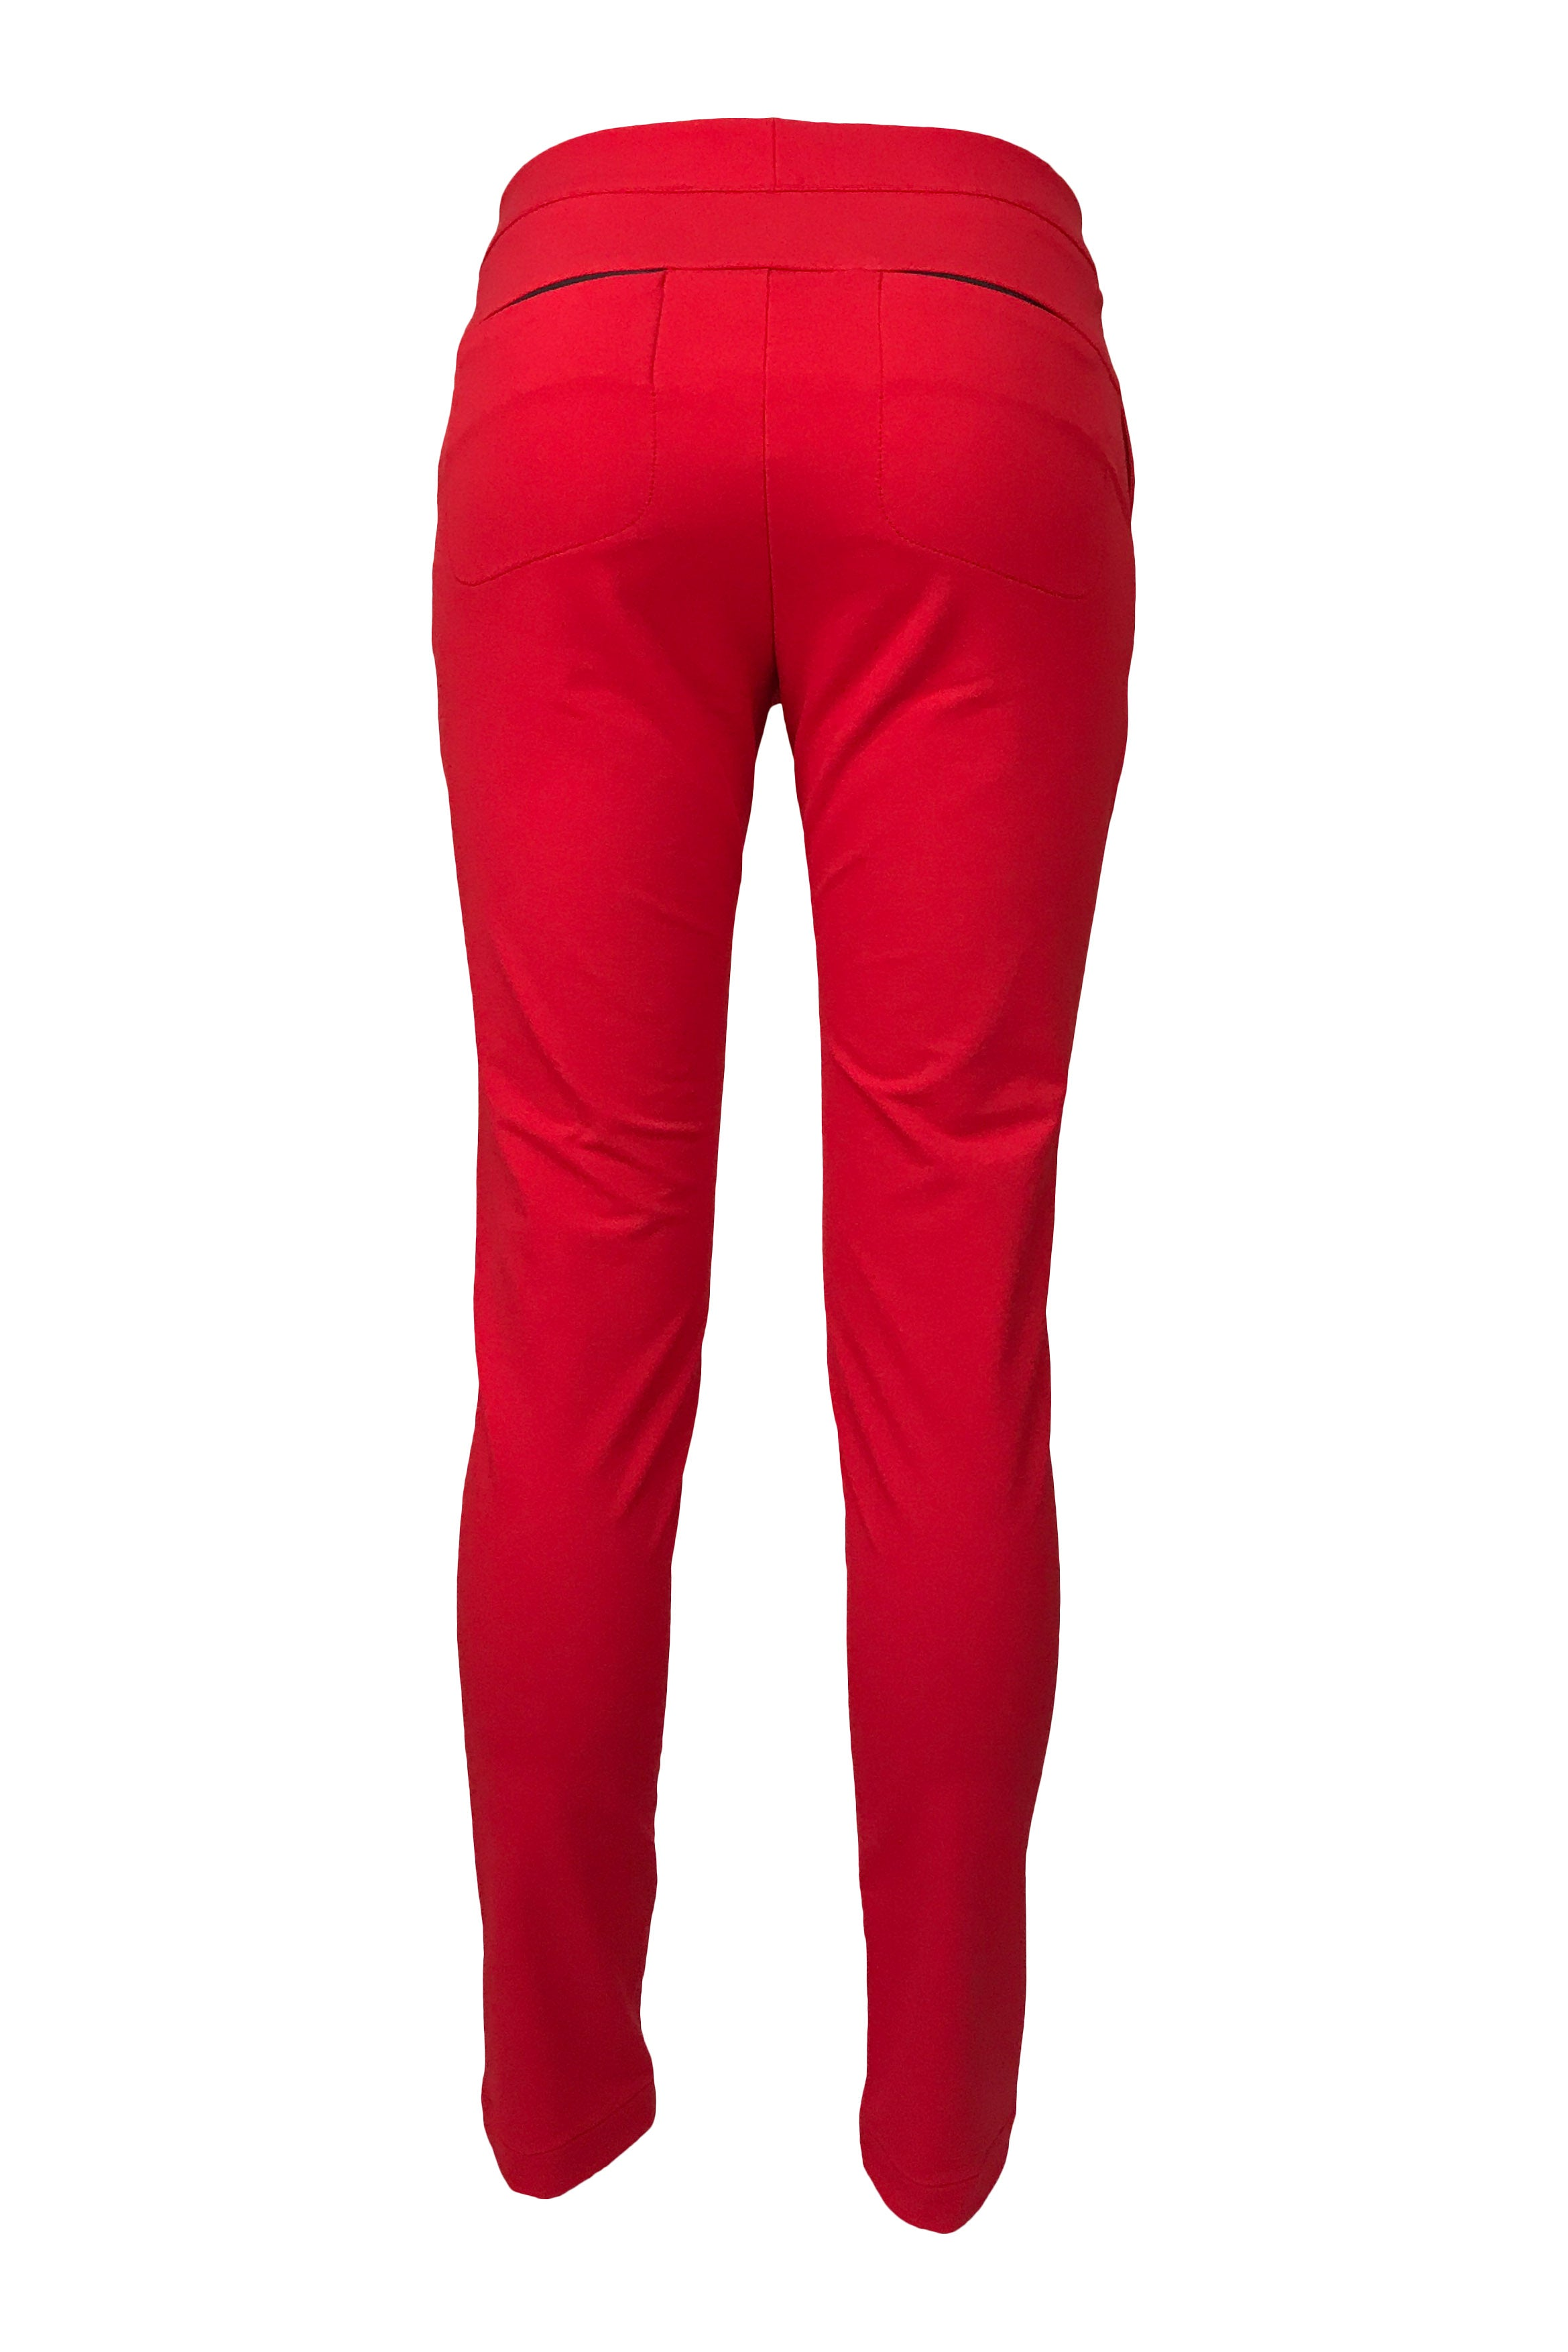 PRESIDIO PANTS - RED